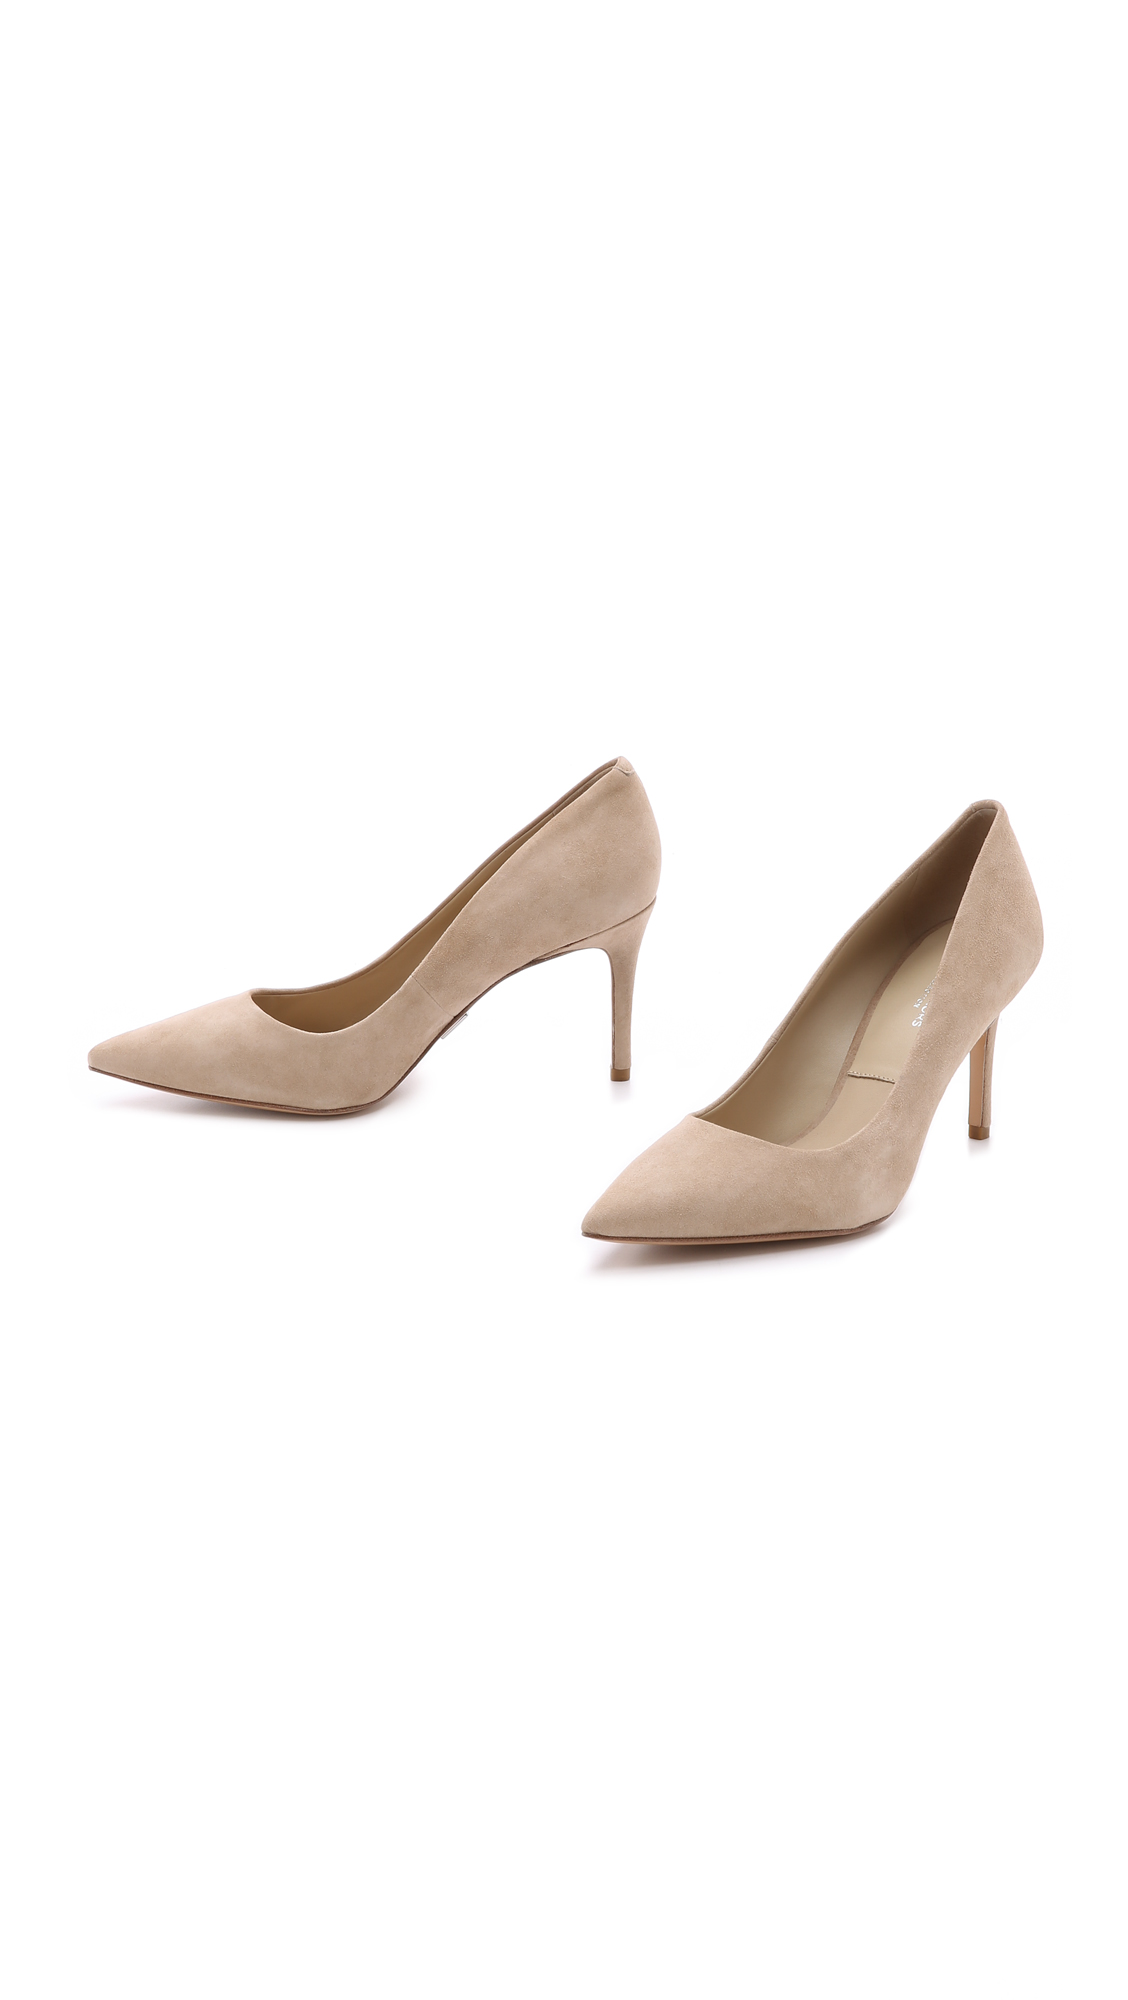 Michael Kors Collection Garner Suede Pumps Shopbop Clarette Wedges Coraline Beige